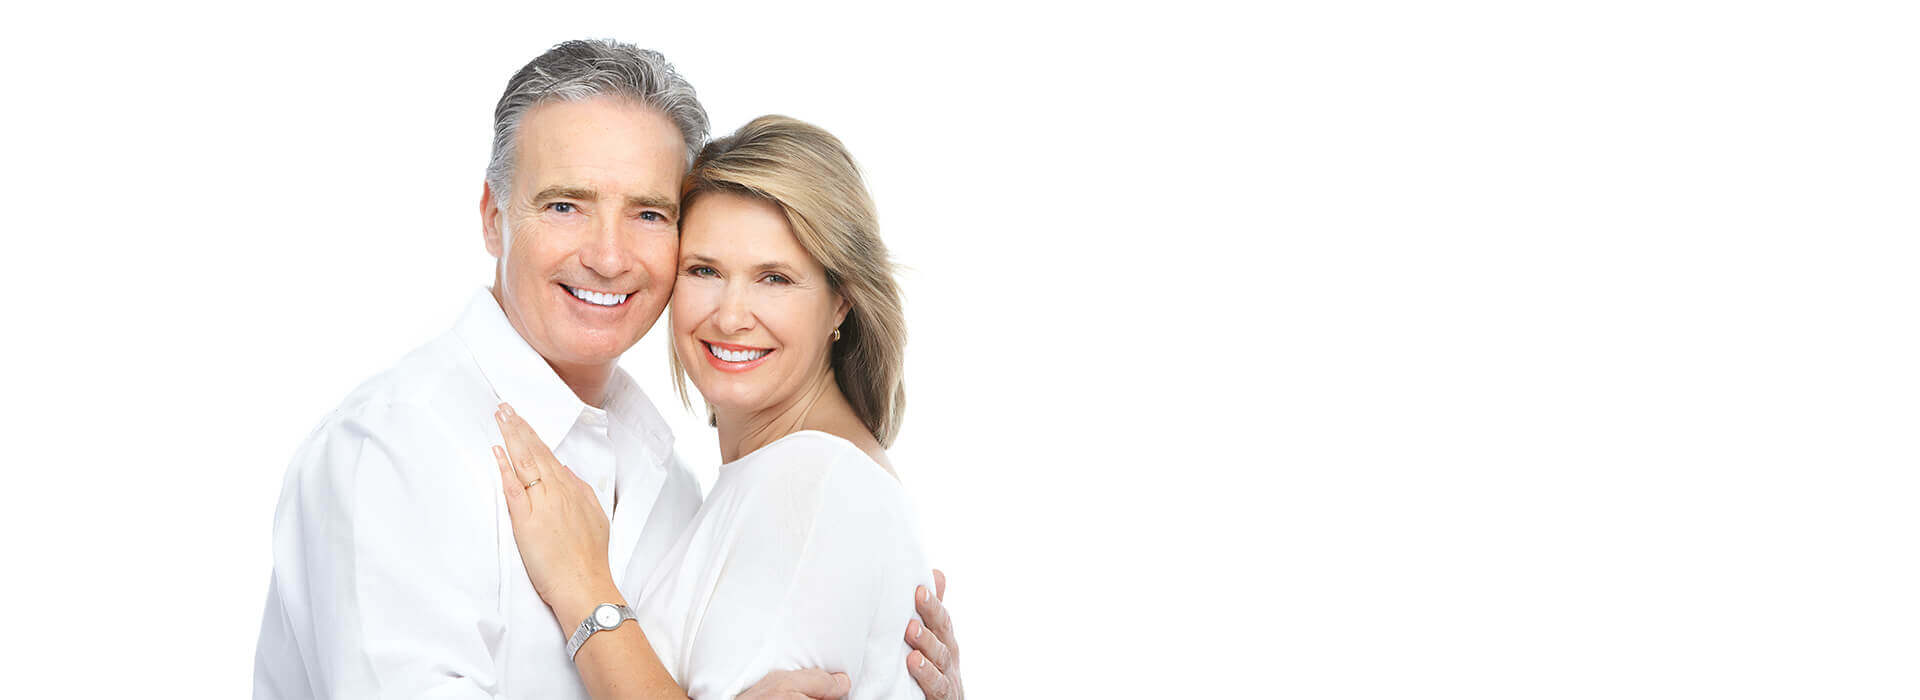 Dental Implants from $97 a month